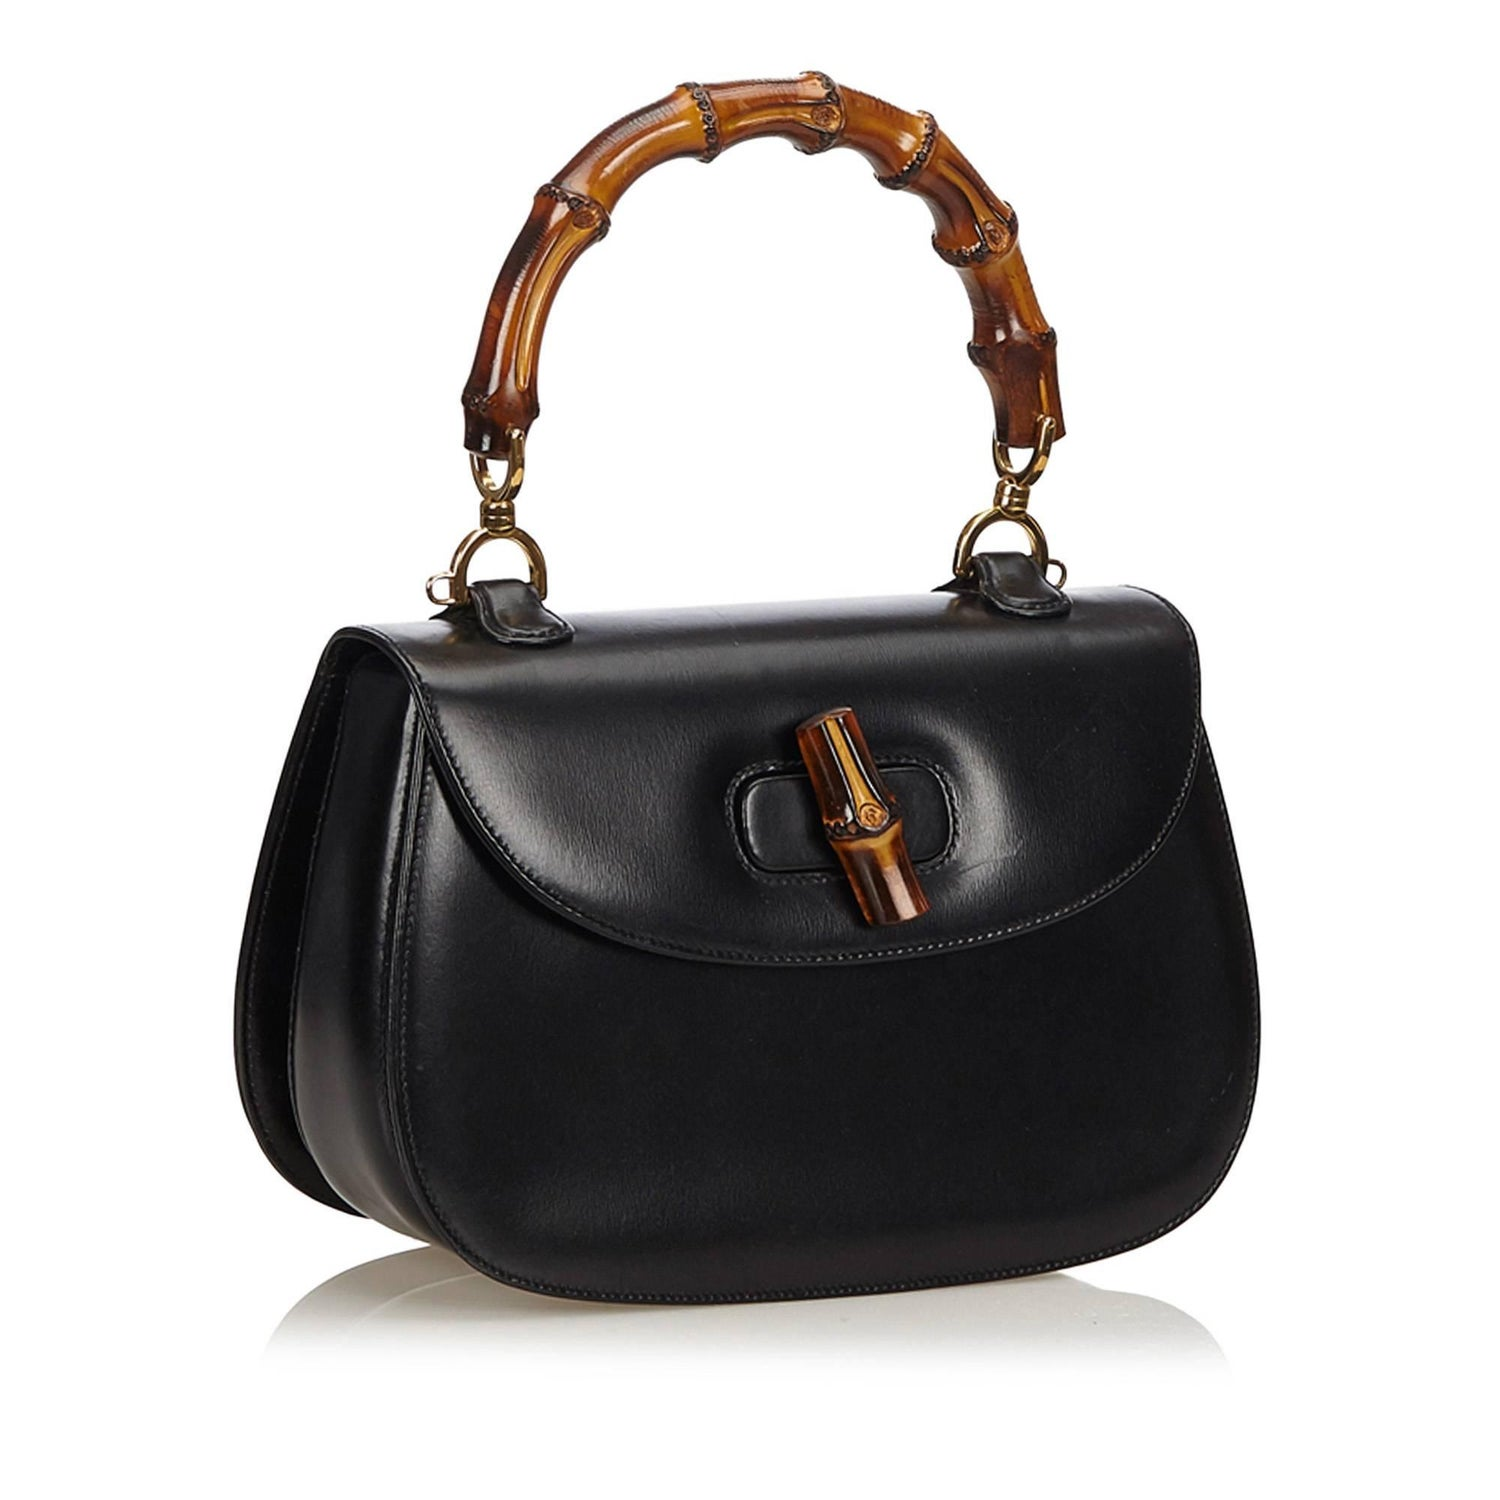 2dee2c788 Gucci Black Leather Bamboo Handle Bag with detachable shoulder strap at  1stdibs